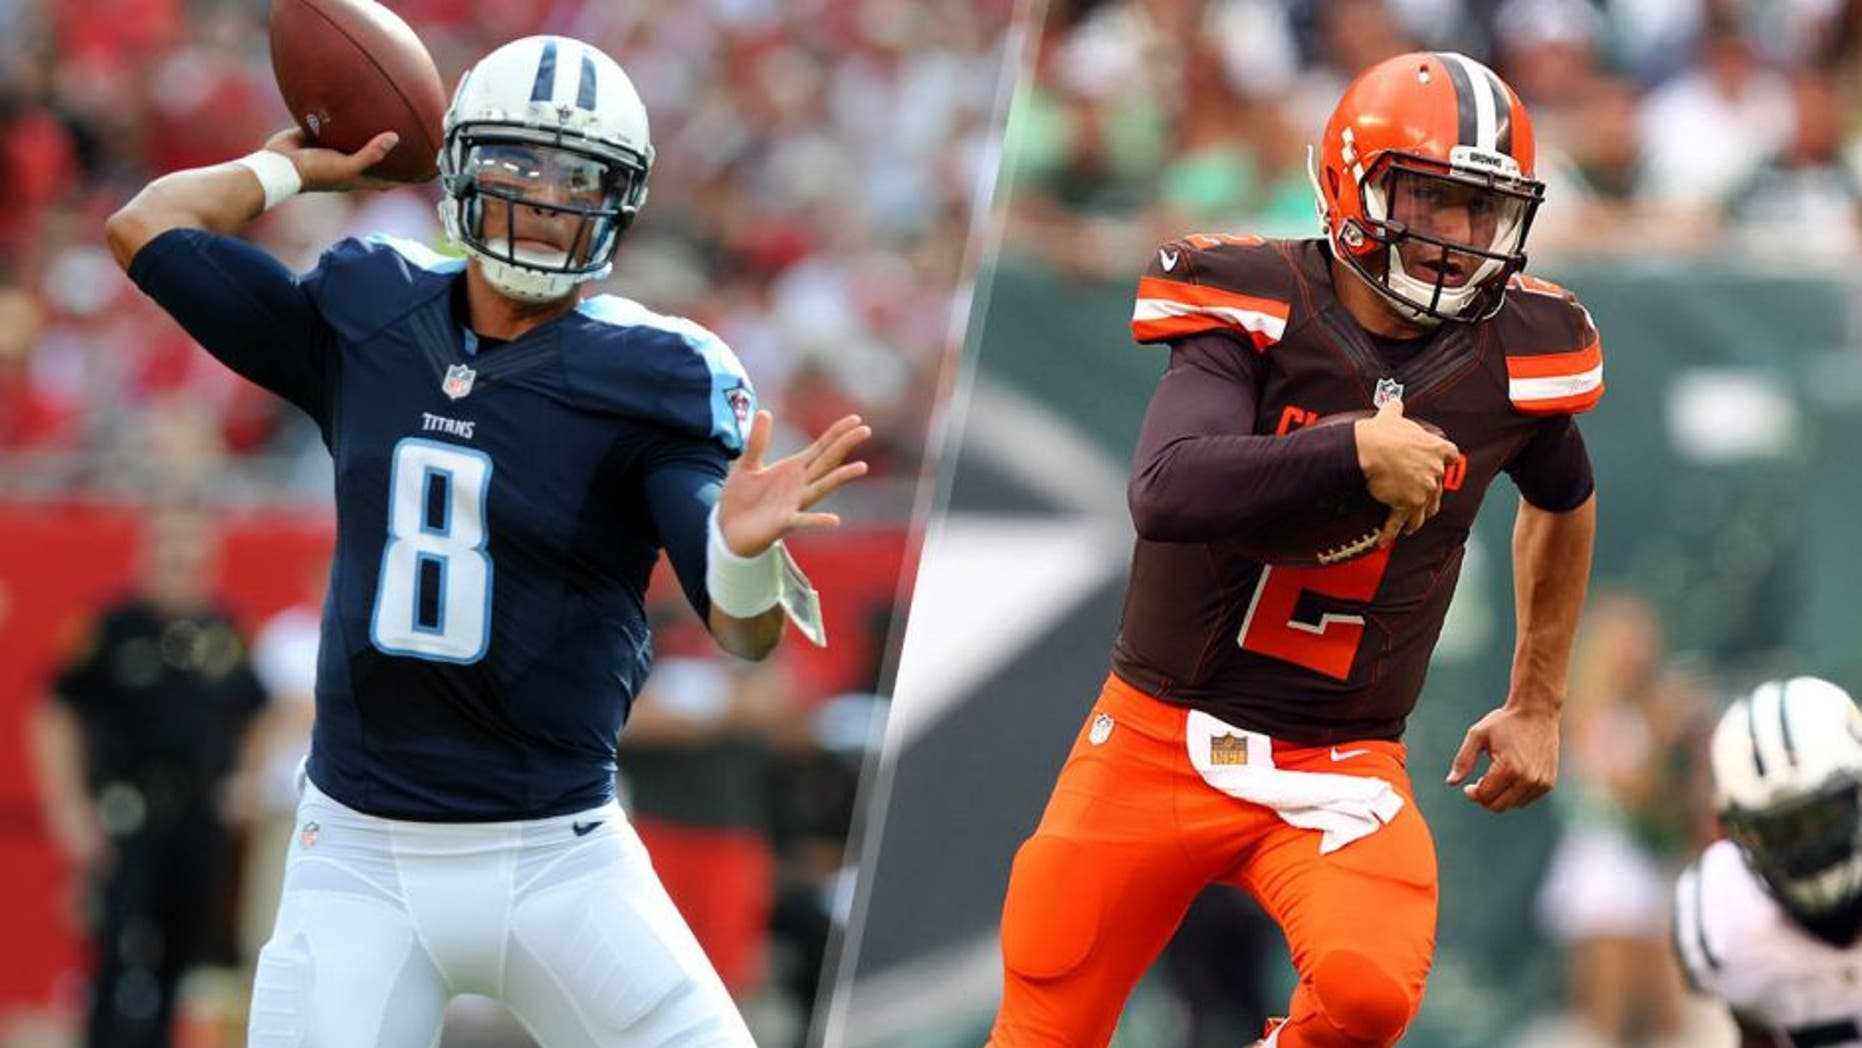 TAMPA, FL - SEPTEMBER 13: Quarterback Marcus Mariota #8 of the Tennessee Titans throws a twelve yard TD against the Tampa Bay Buccaneers in the first quarter at Raymond James Stadium on September 13, 2015 in Tampa, Florida. (Photo by Cliff McBride/Getty Images) Sep 13, 2015; East Rutherford, NJ, USA; Cleveland Browns quarterback Johnny Manziel (2) runs with the ball against the New York Jets during the second half at MetLife Stadium. Mandatory Credit: Danny Wild-USA TODAY Sports